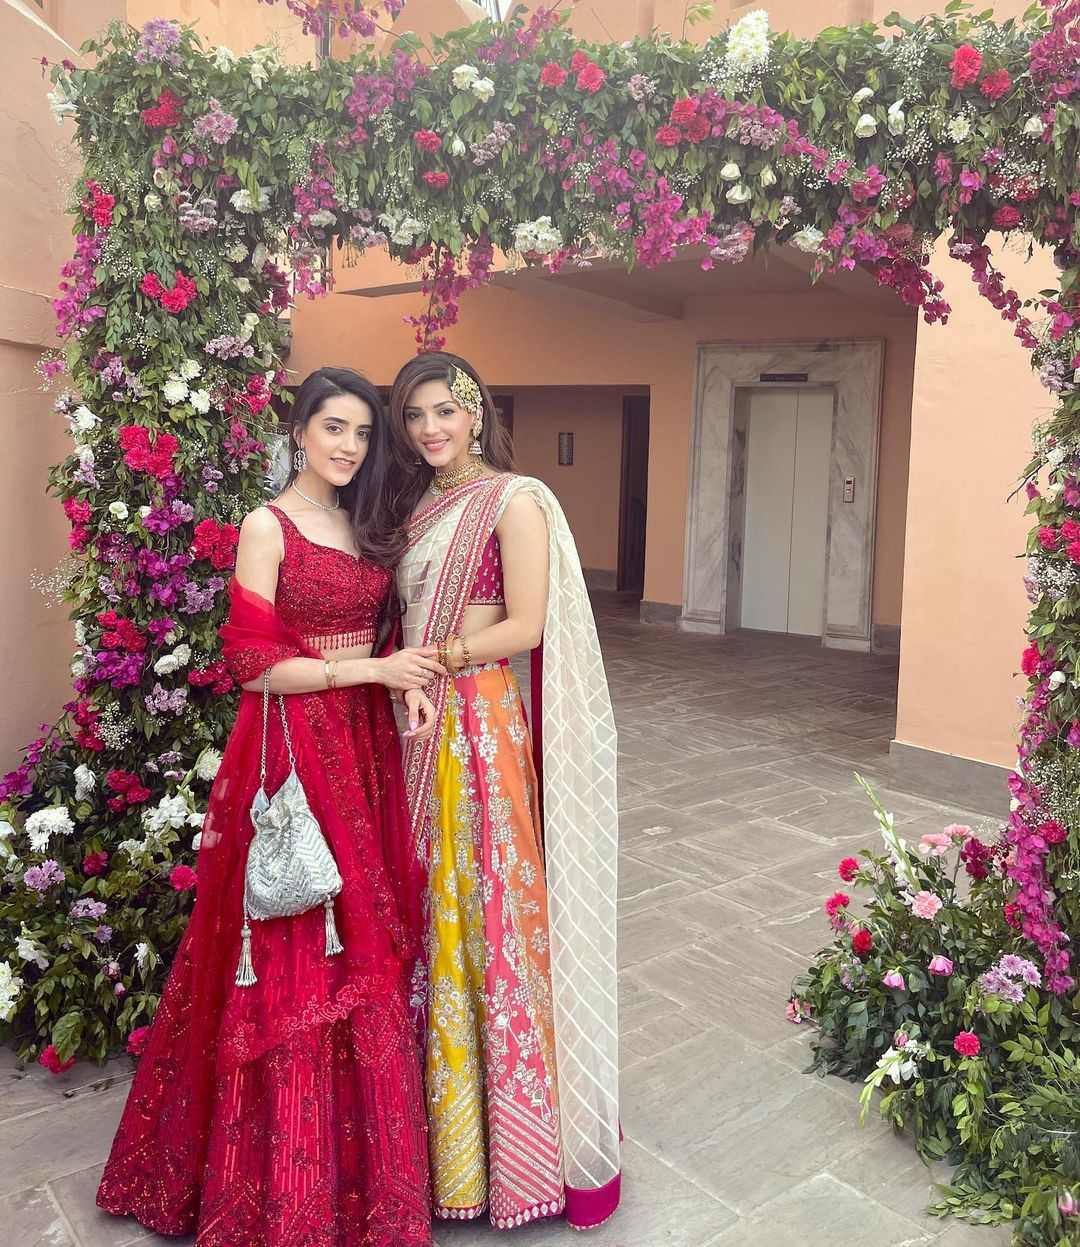 Mehreen Pirzada with her sister-in-law